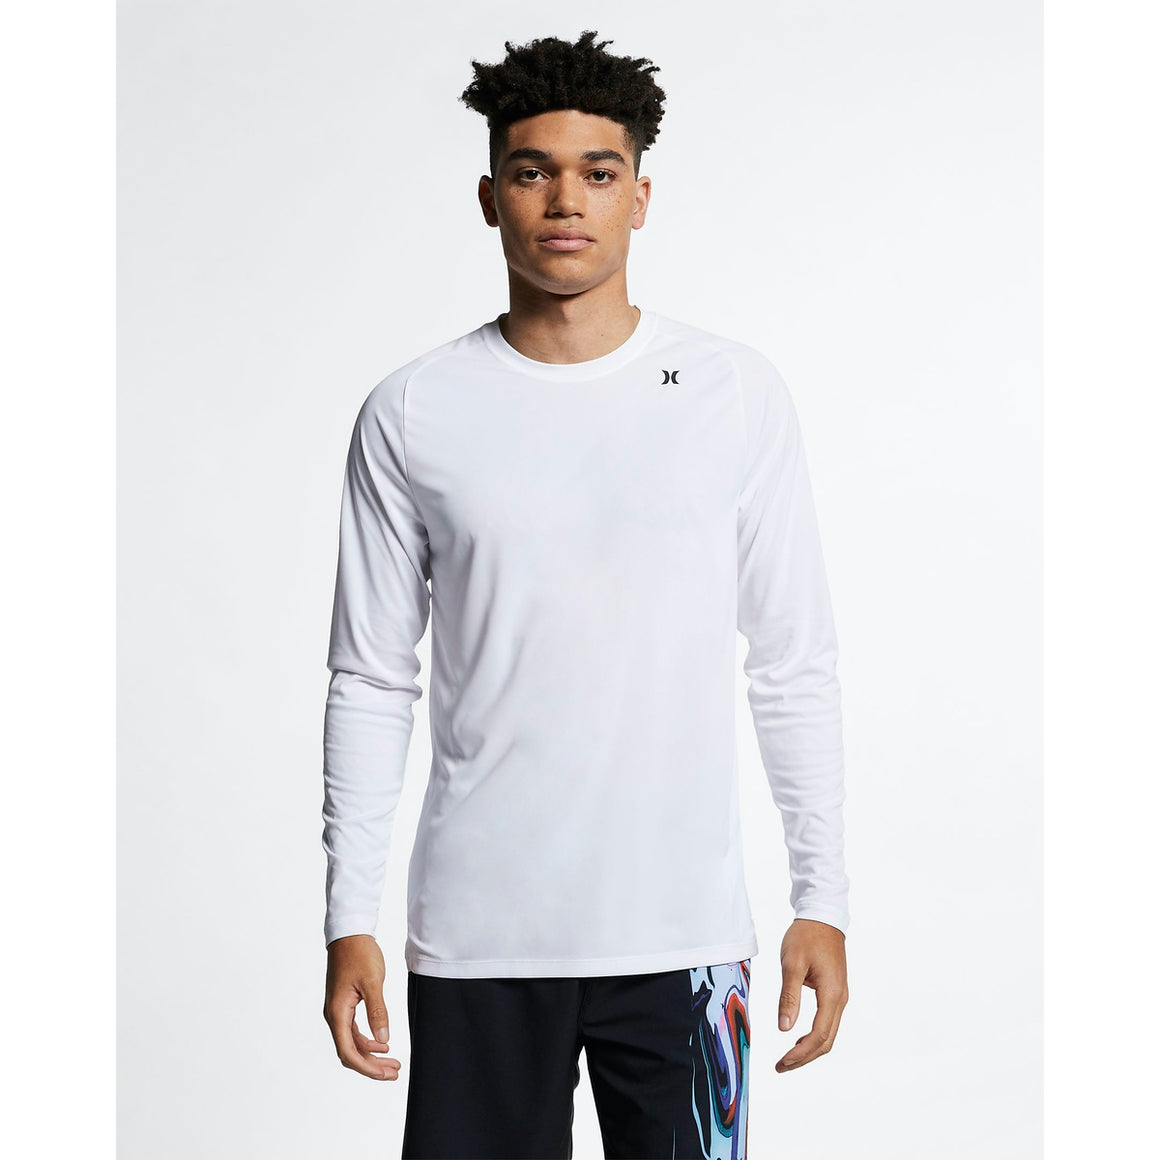 Men's Rashies Hurley Quick Dry T-Shirt L/S - White